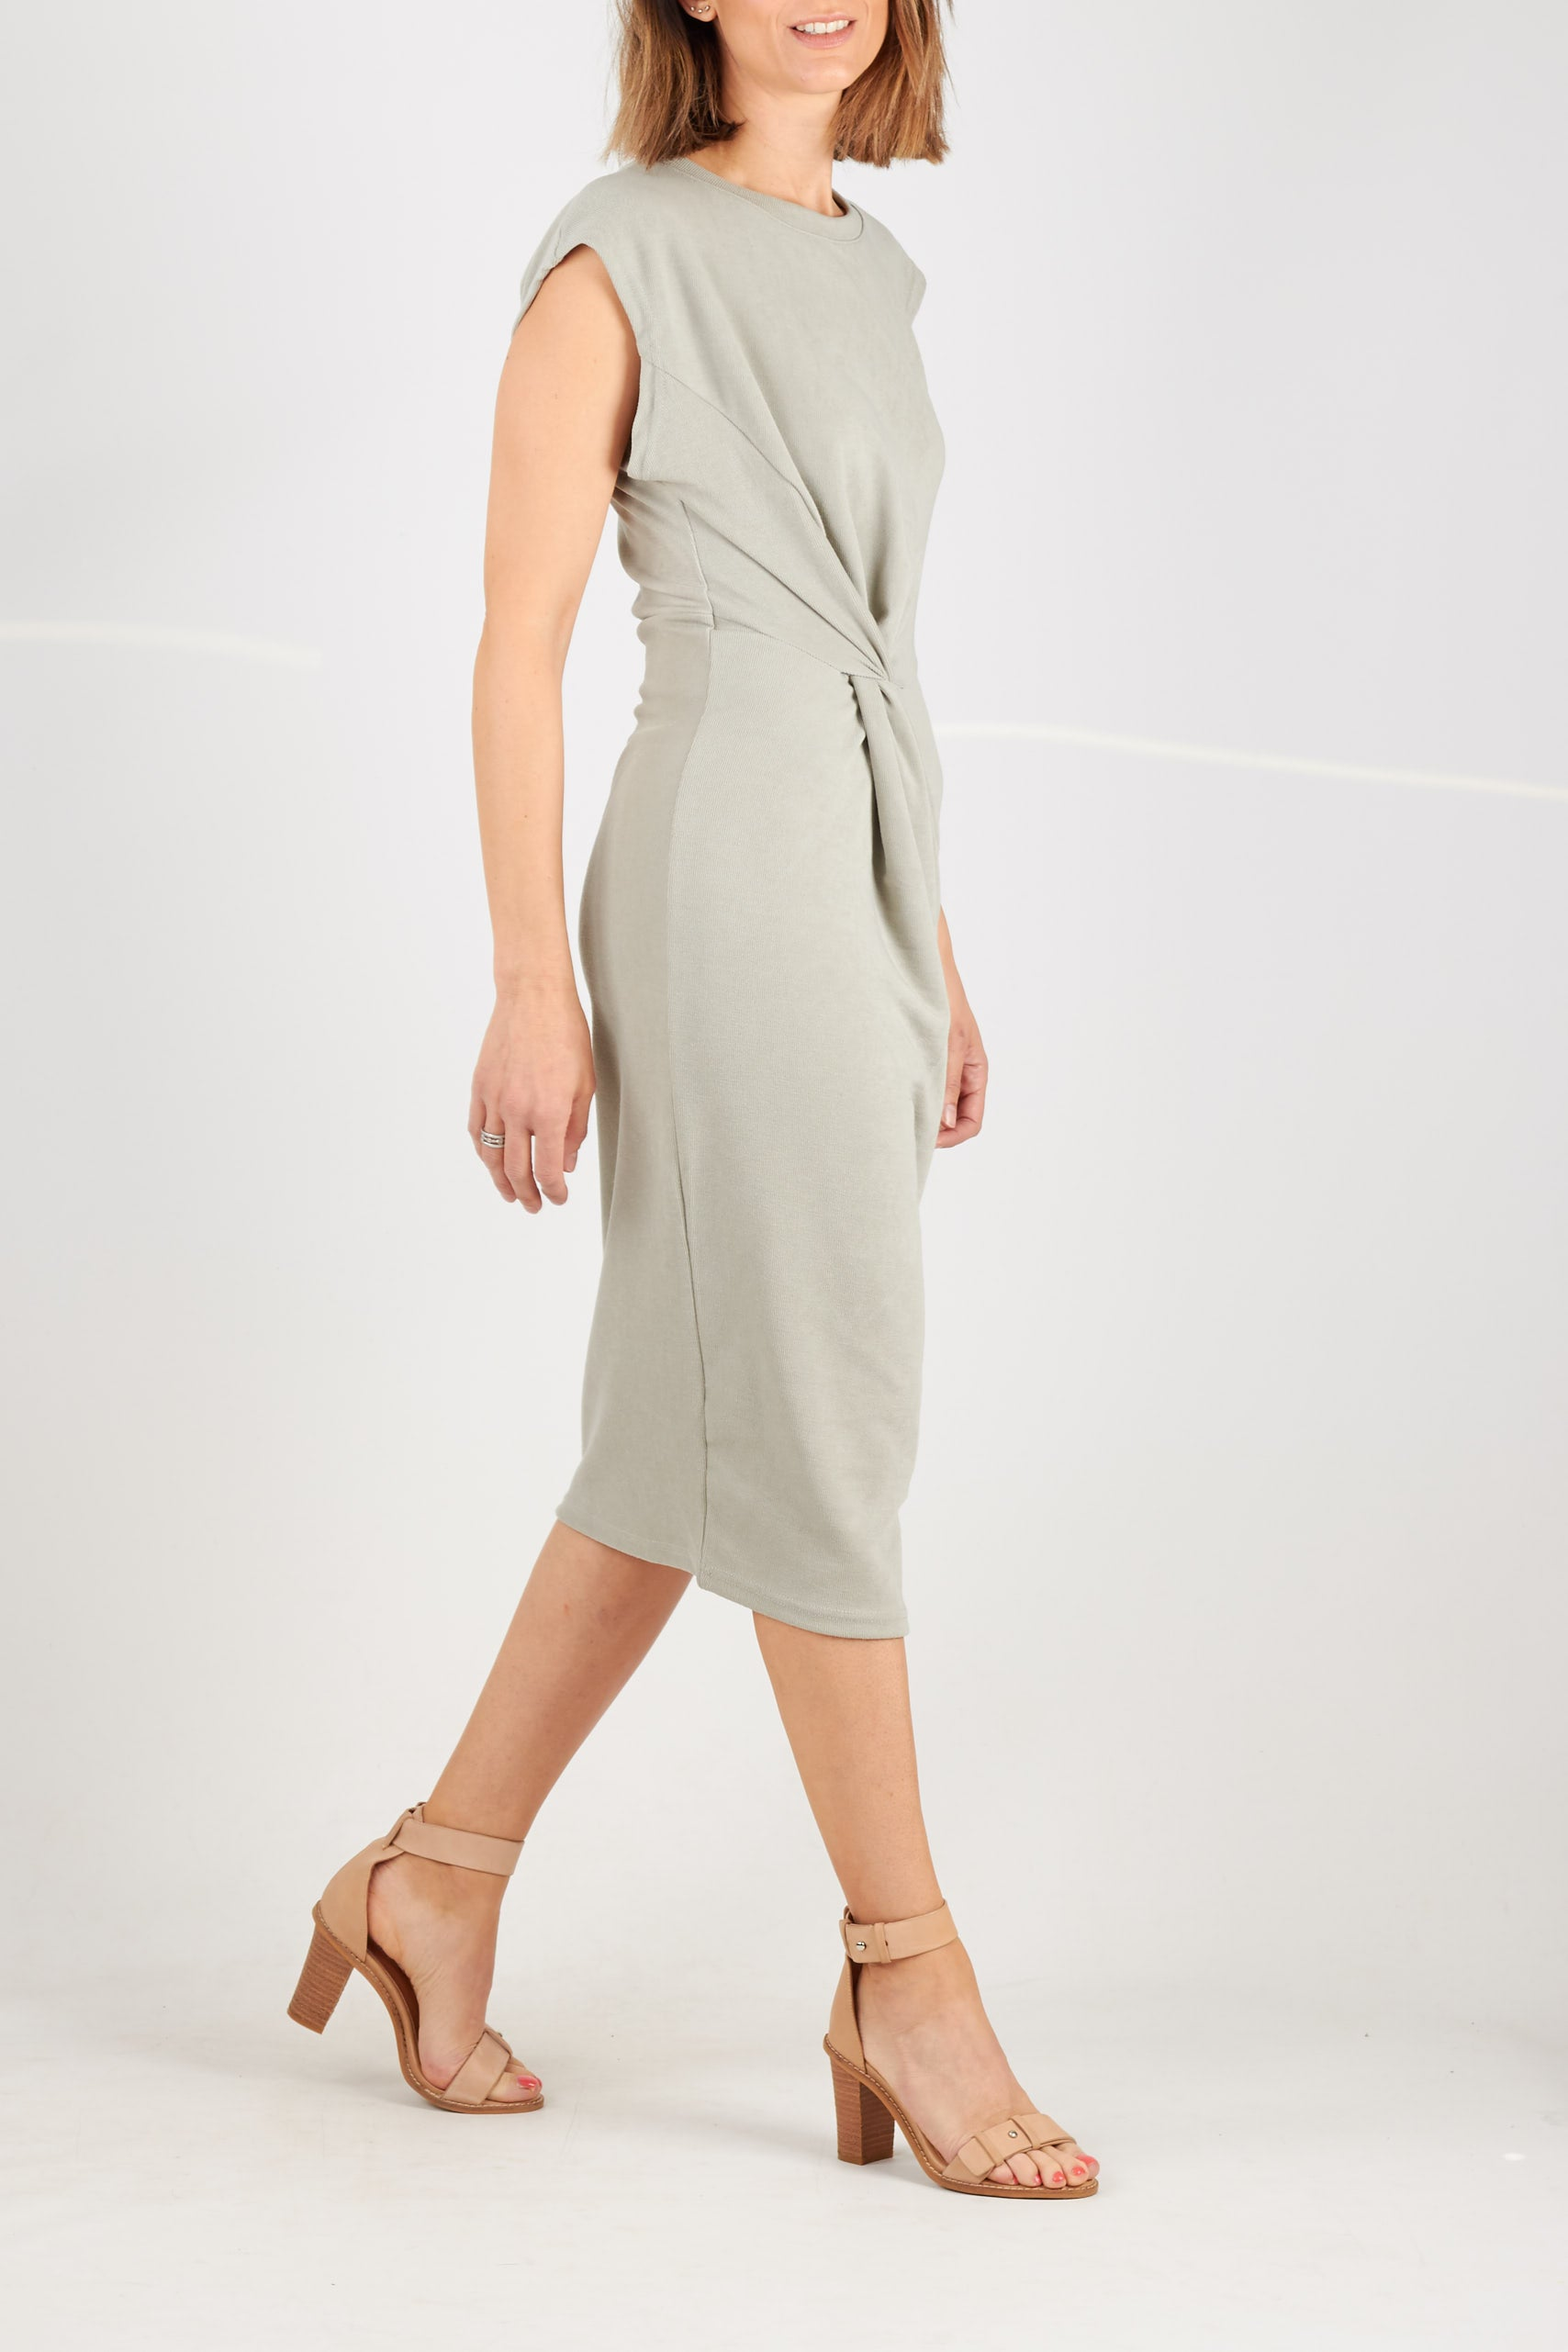 Sage green ribbed knit cap sleeve midi dress with twist feature at waist.